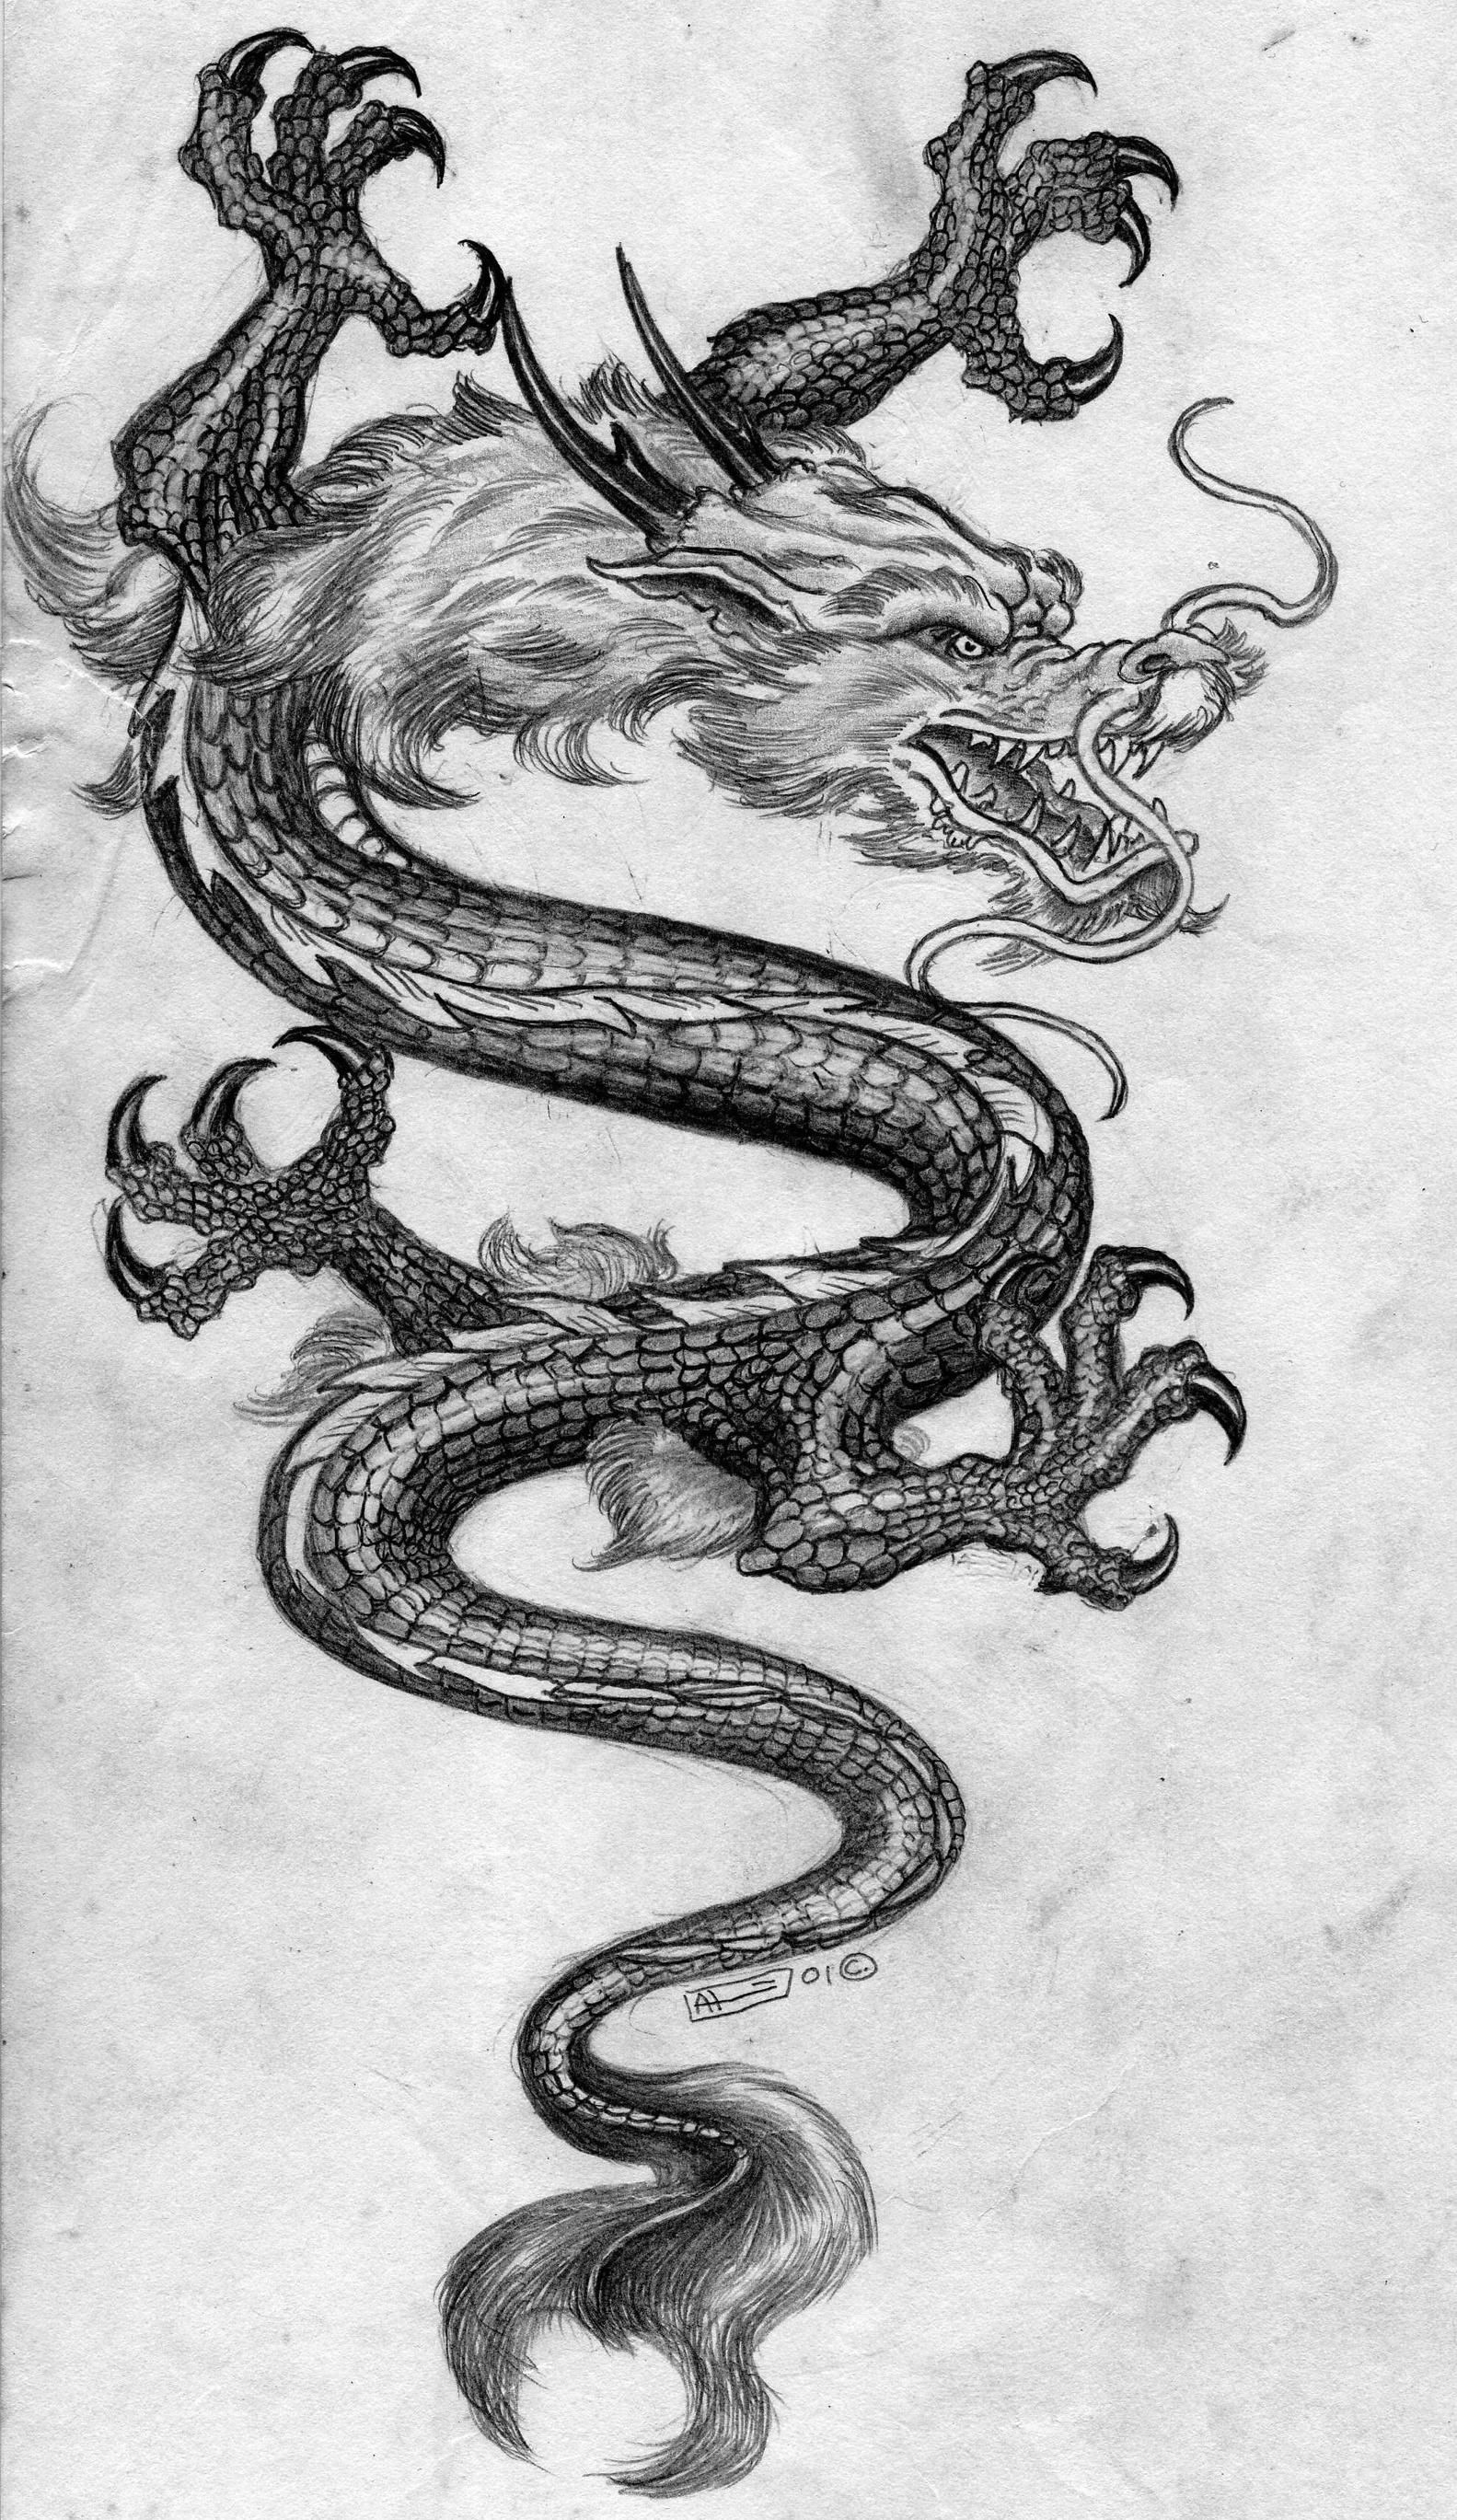 Chinese dragon pencil sketch